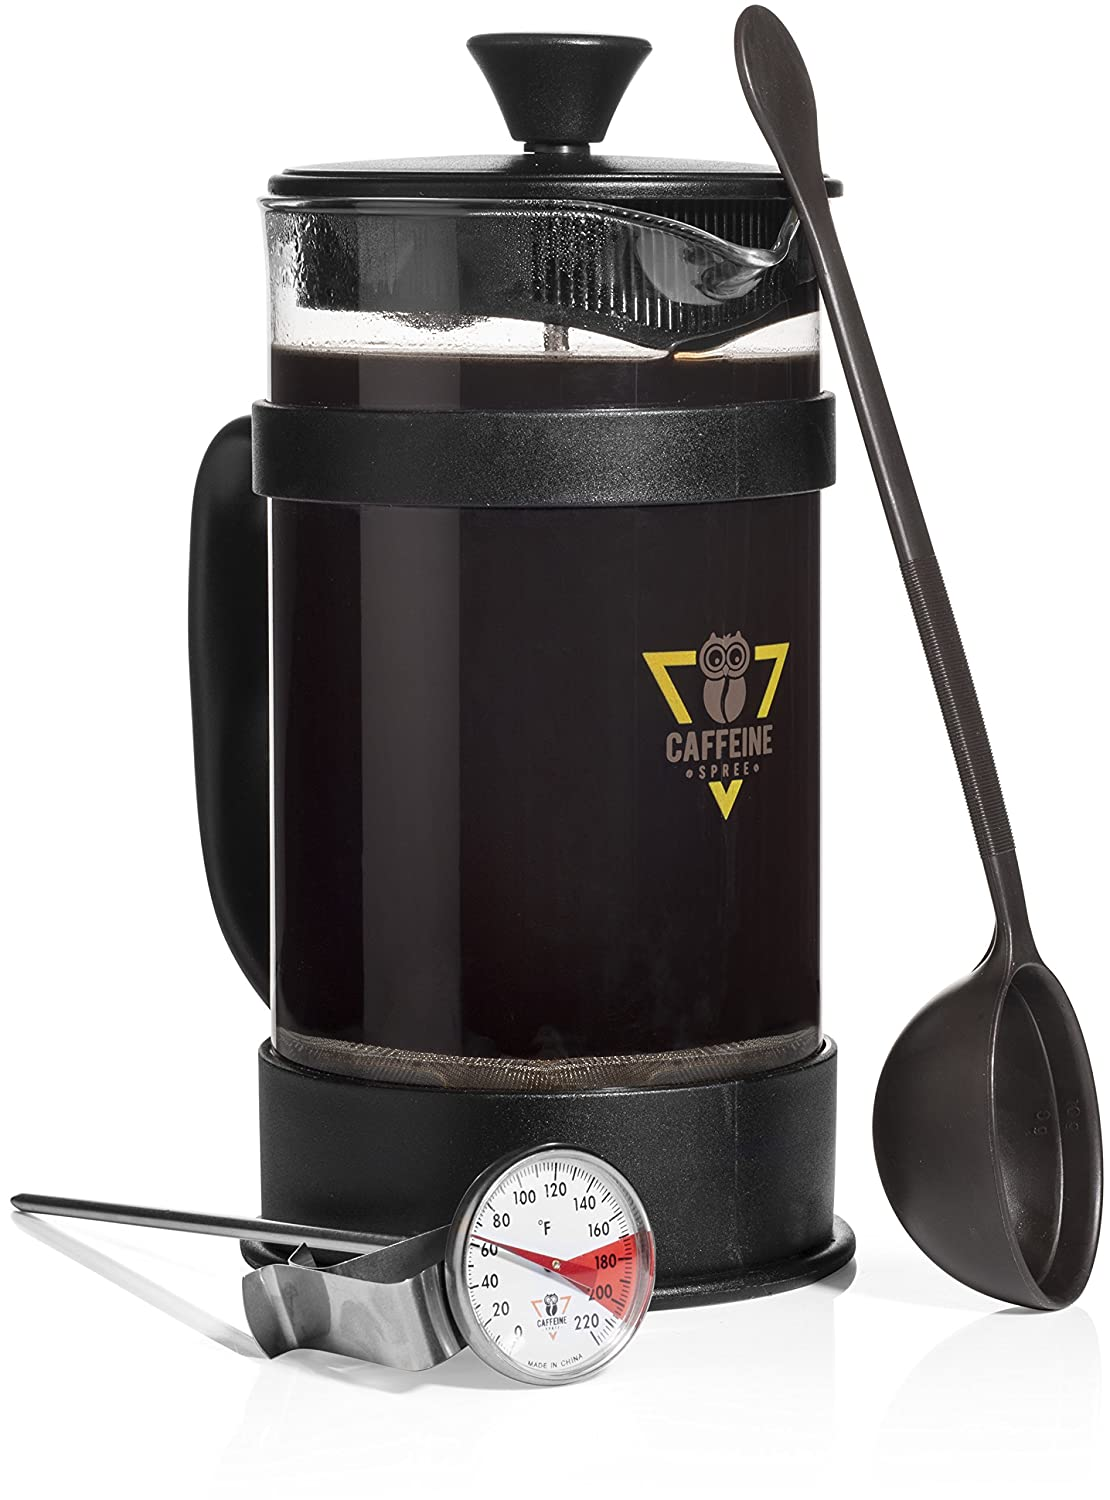 Caffeine Spree IncrediBrew French Press Coffee, Tea Espresso Maker Kit With Stainless Steel Kitchen Thermometer, Measuring Spoon. Makes 8 Cup 1 Liter. Heat Resistant Glass. Best Gift Idea